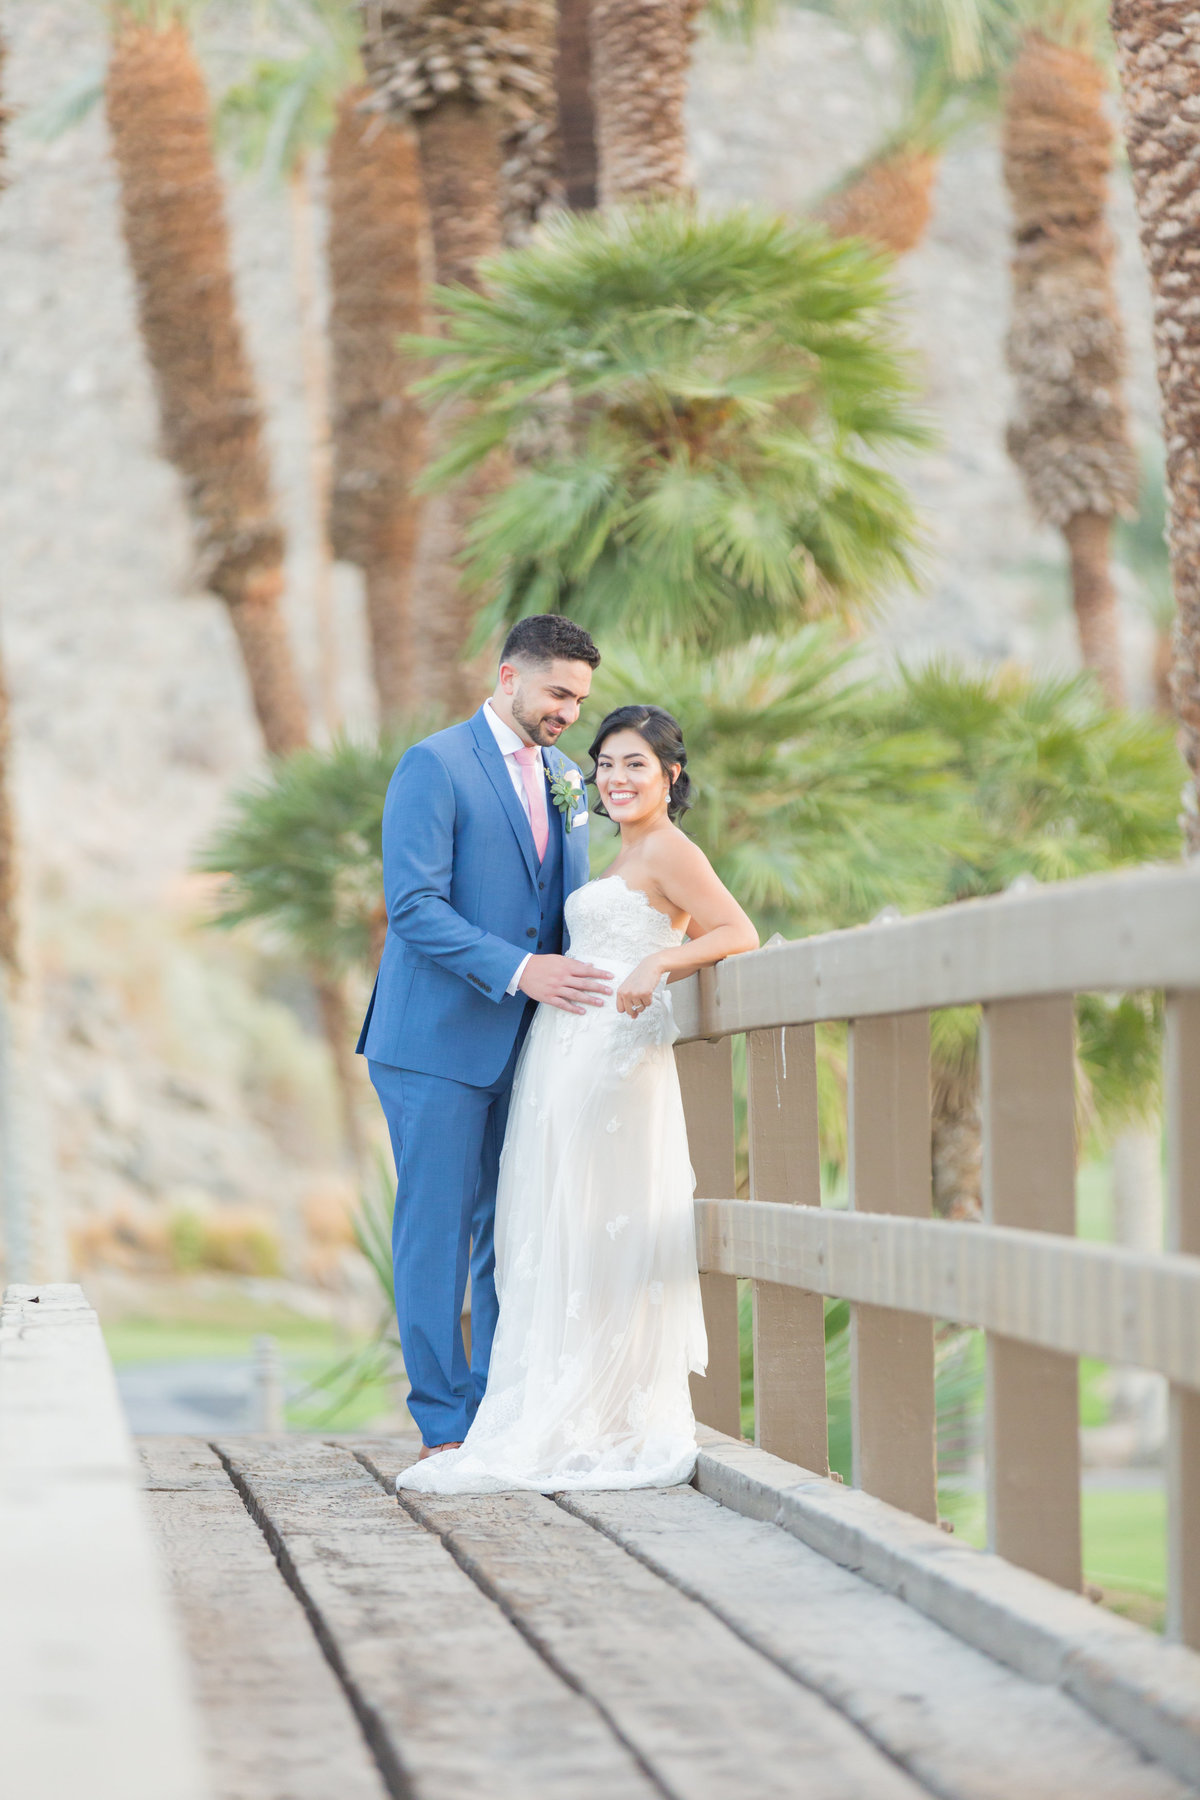 Erica Mendenhall Photography_Indian Wells Wedding_MP_0523web